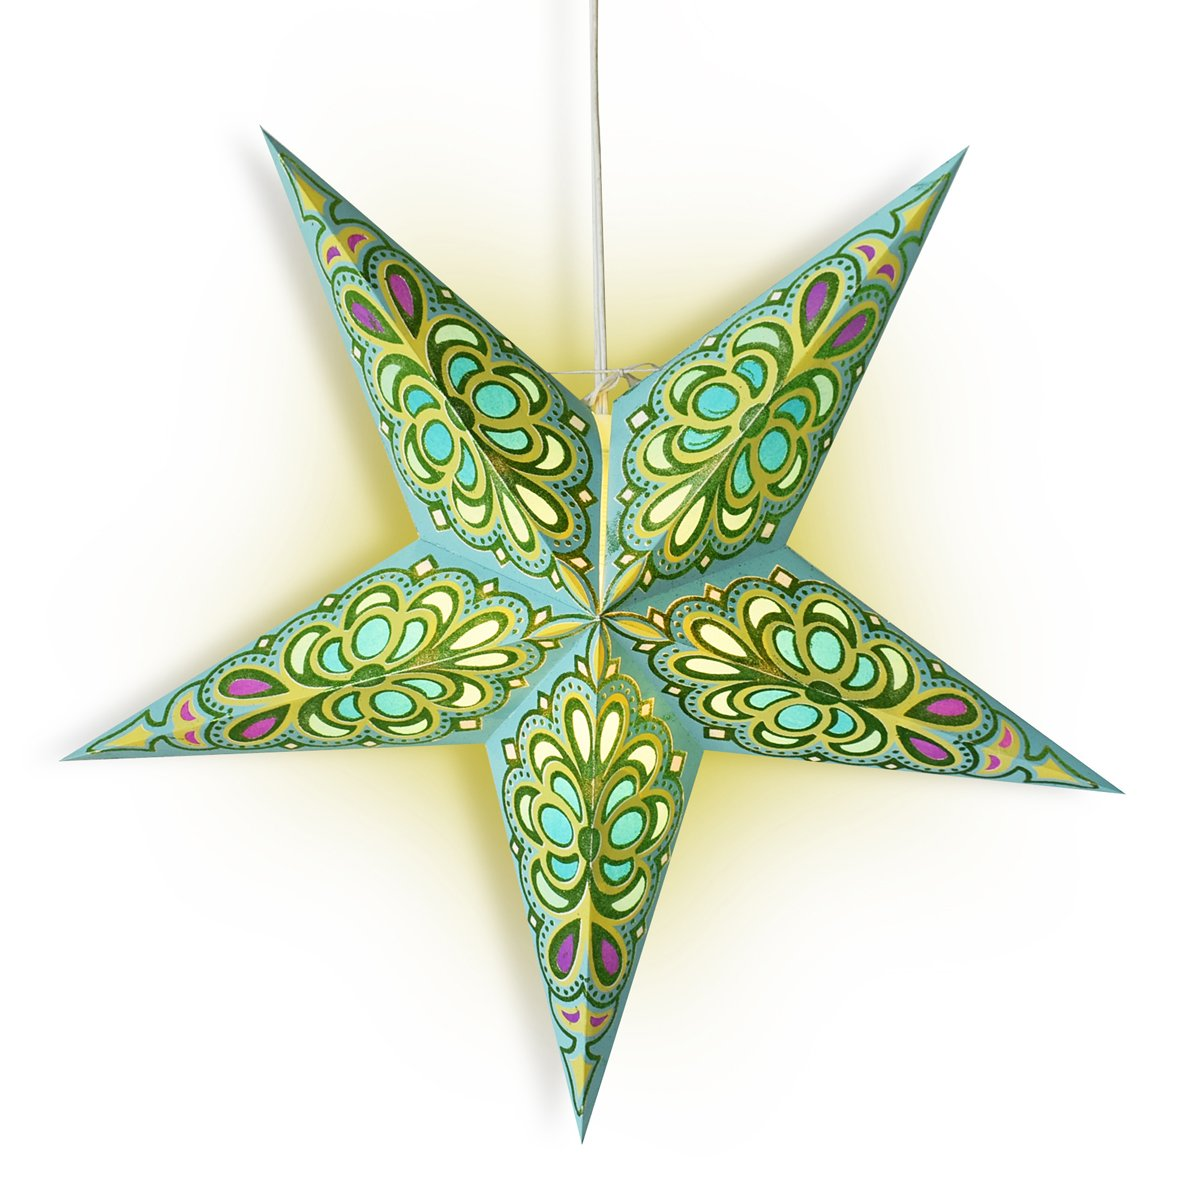 "24"" Green / Turquoise Merry Gold Glitter Paper Star Lantern, Chinese Hanging Wedding & Party Decoration - AsianImportStore.com - B2B Wholesale Lighting and Decor"